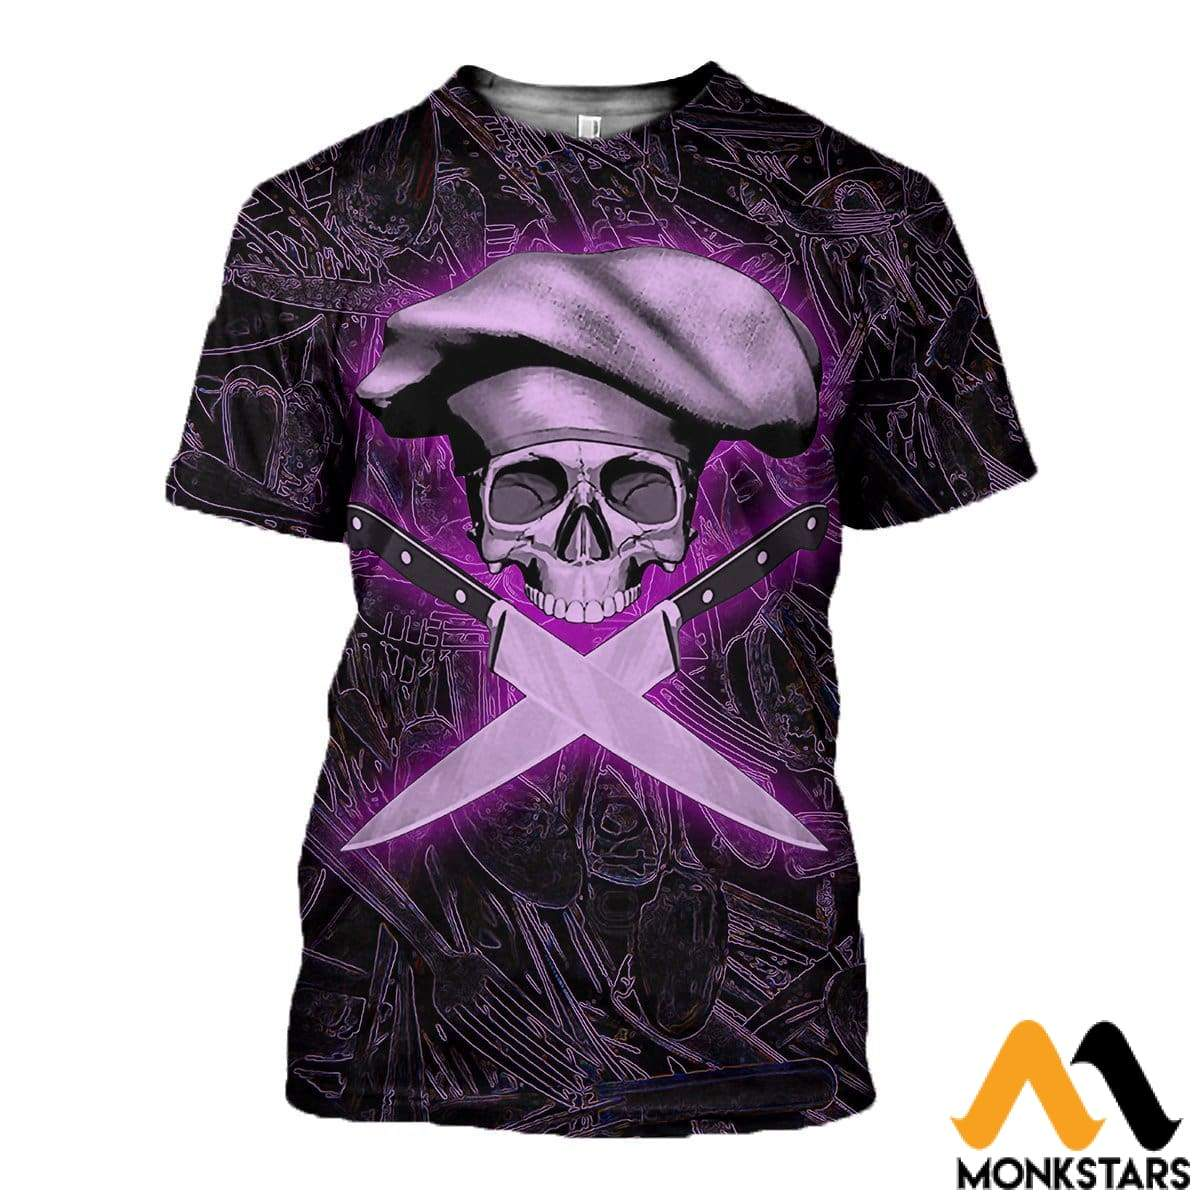 3D All Over Printed Chef Skull T-Shirt Hoodie Ahul090401 / Xs Clothes